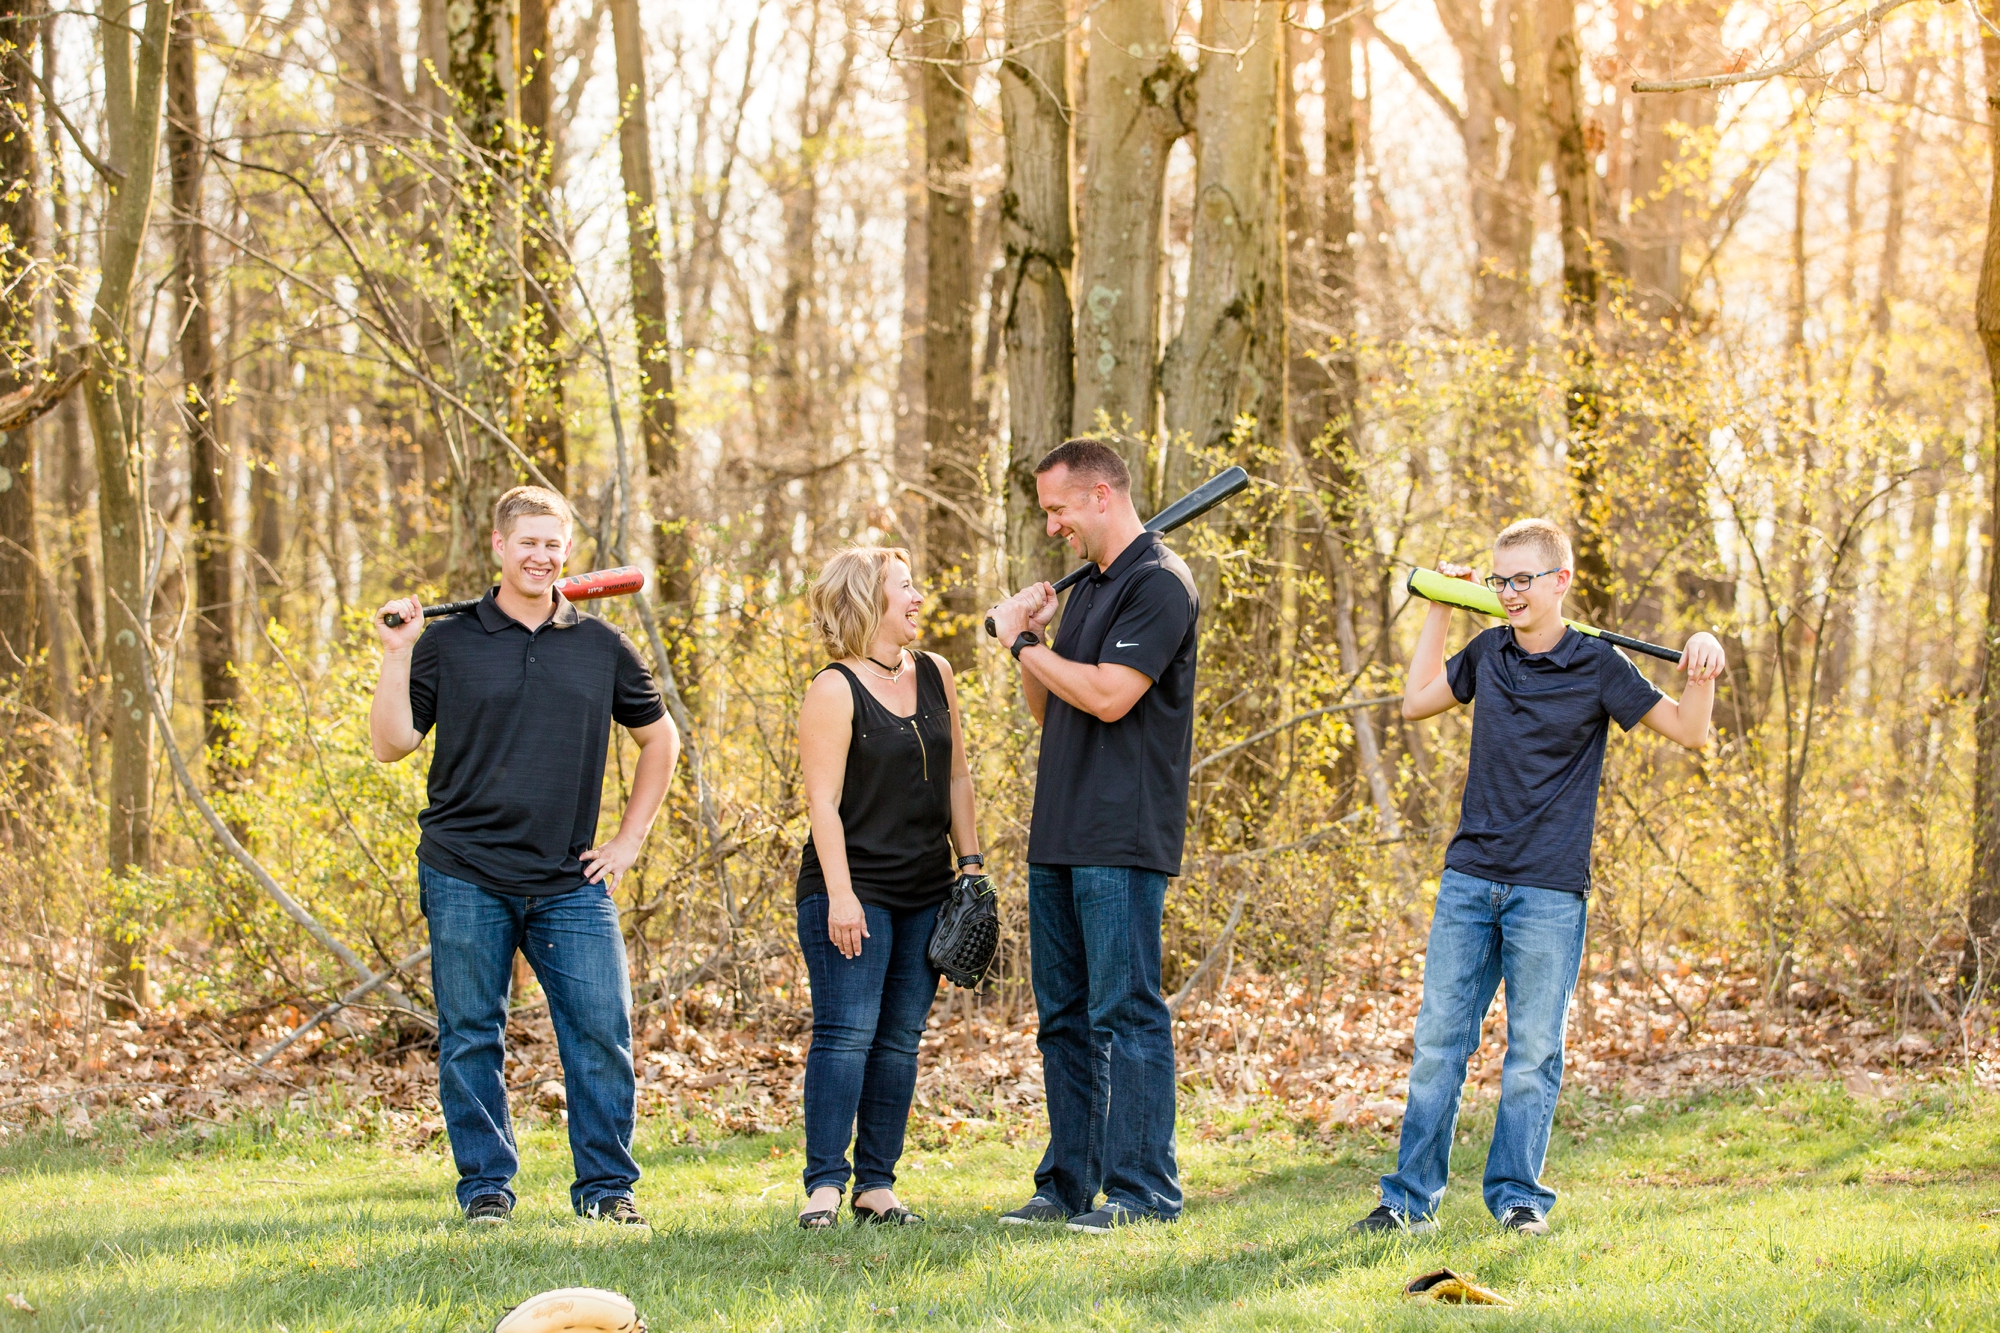 pittsburgh family photographer, cranberry township family photographer, wexford family photographer, north park family photos